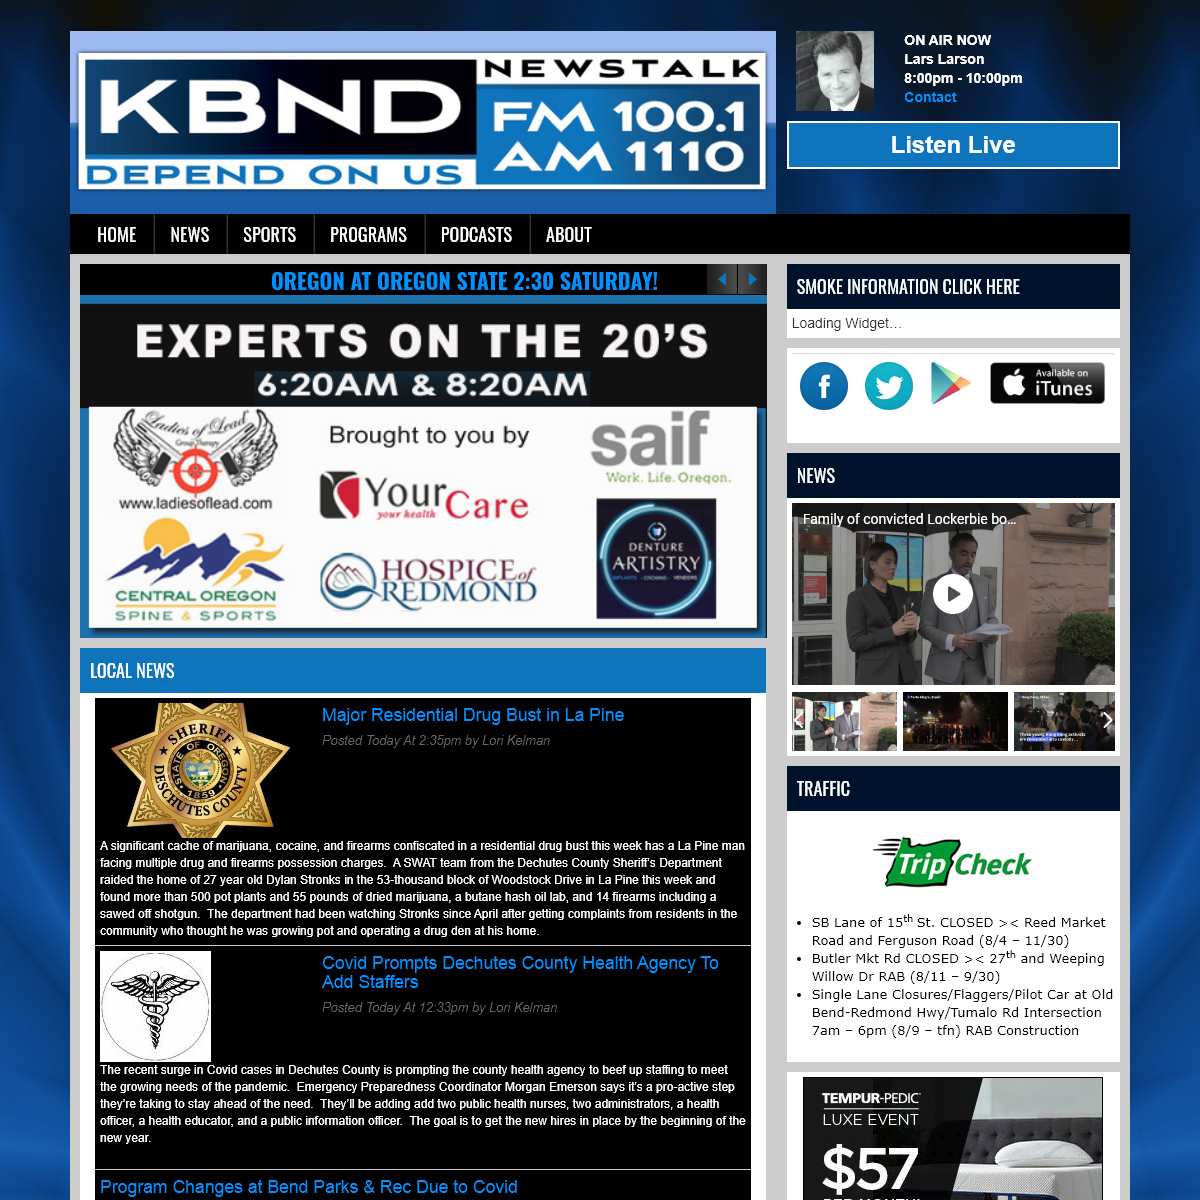 FM News 100.1 and 1110 AM KBND